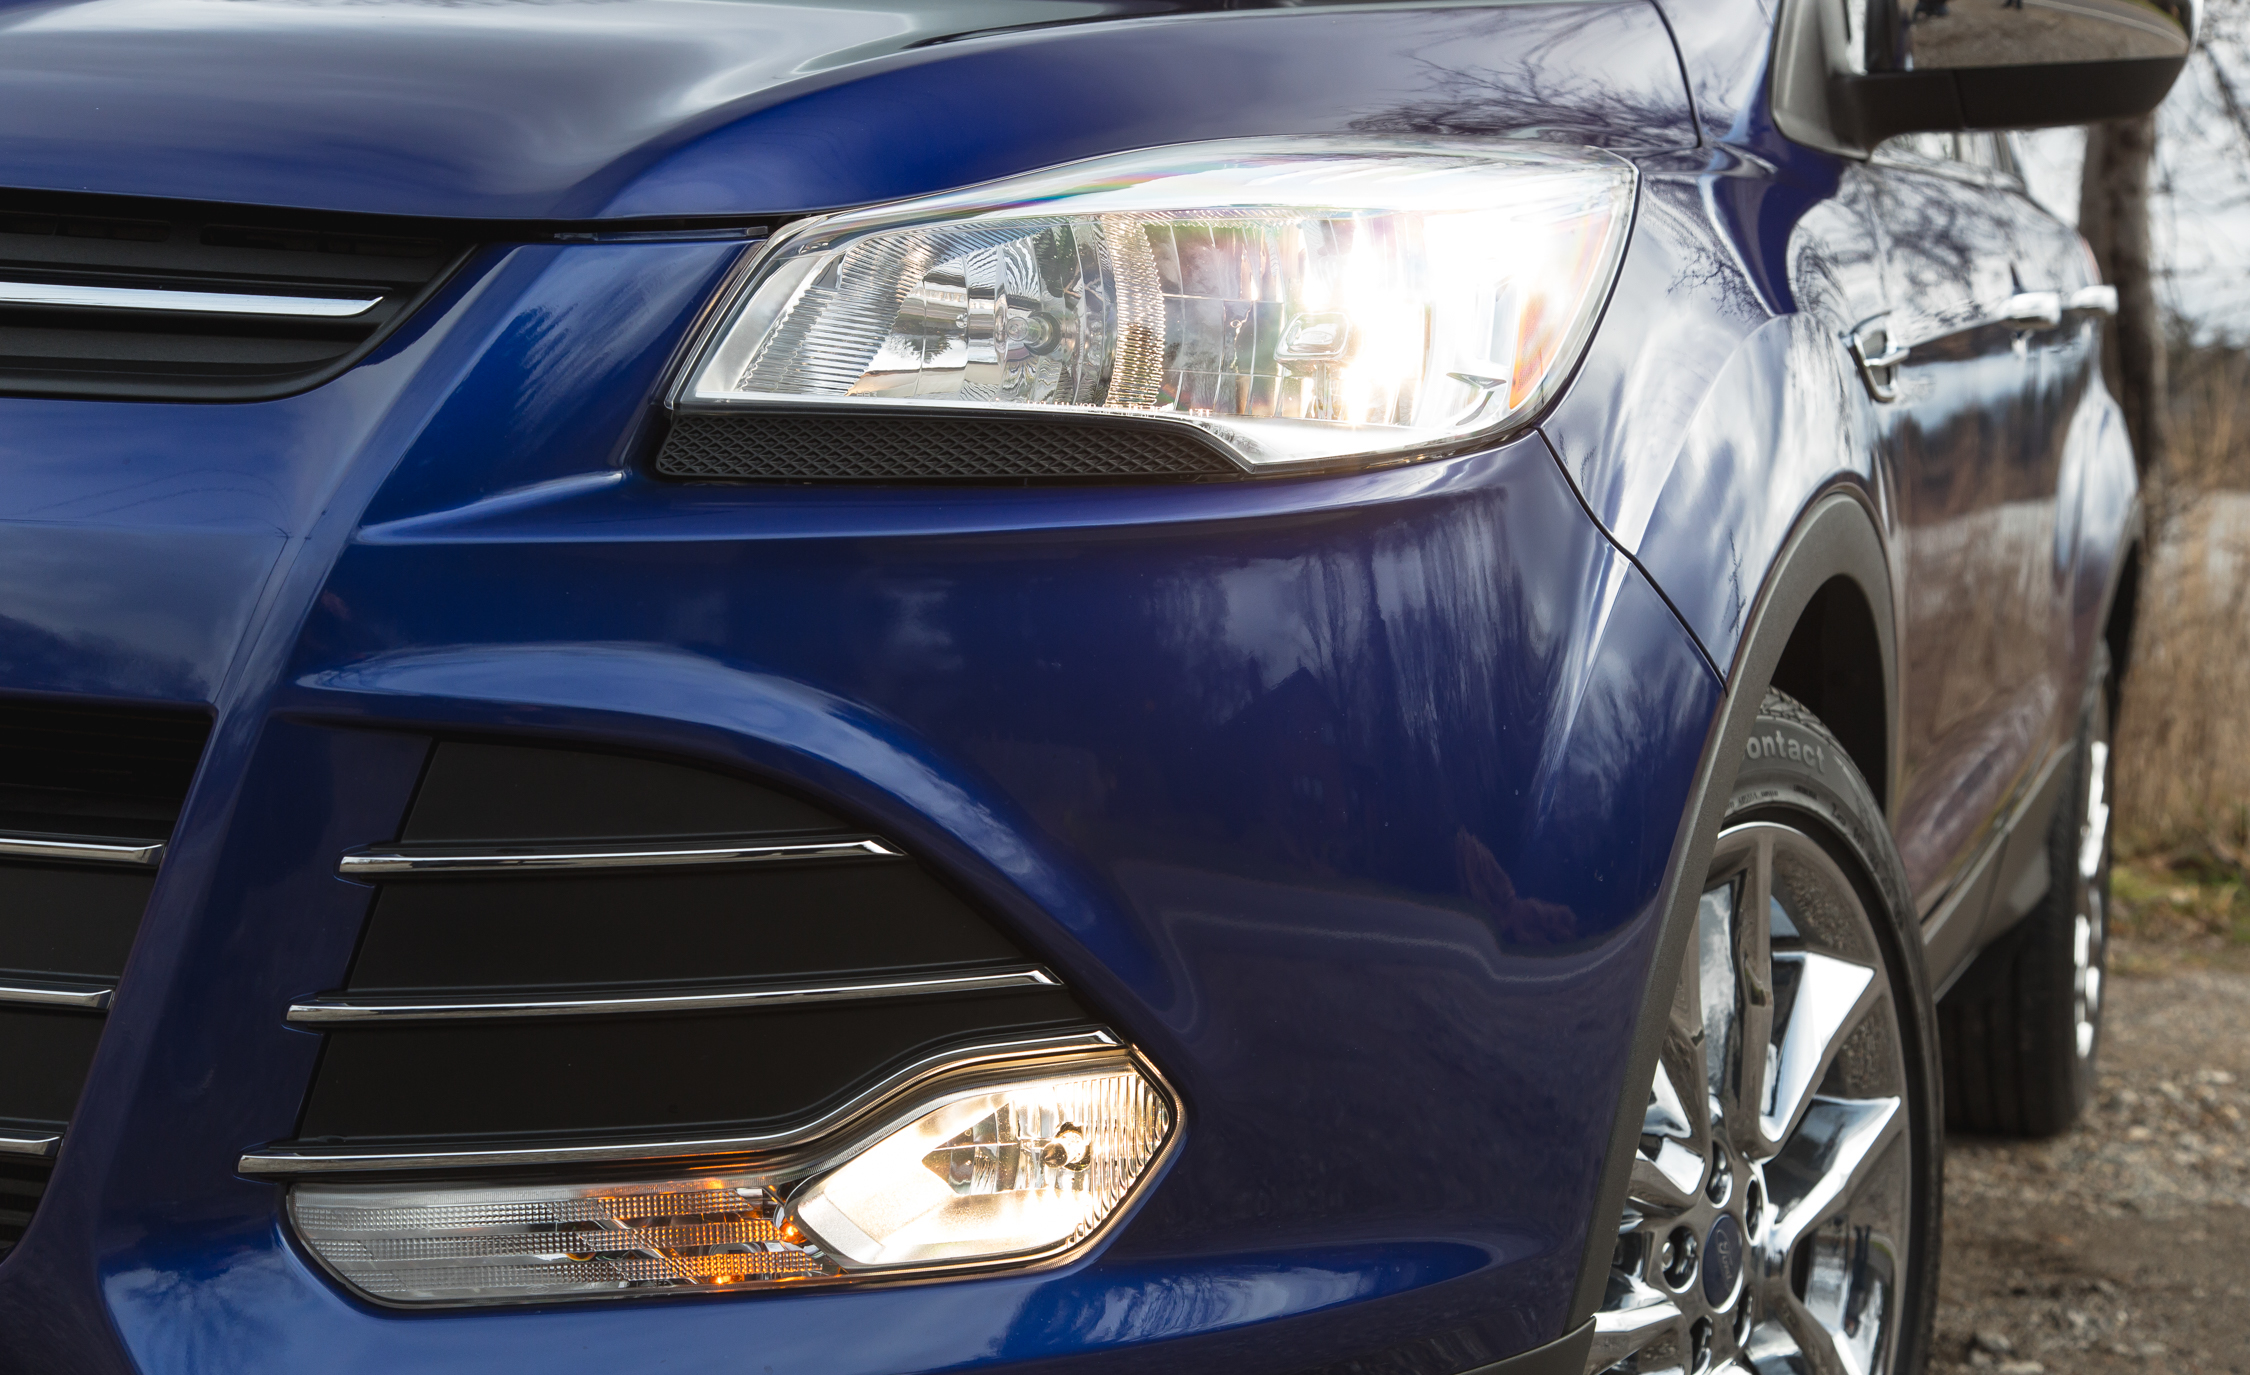 2016 Ford Escape Ecoboost SE Exterior Fog Lamp and Headlamp